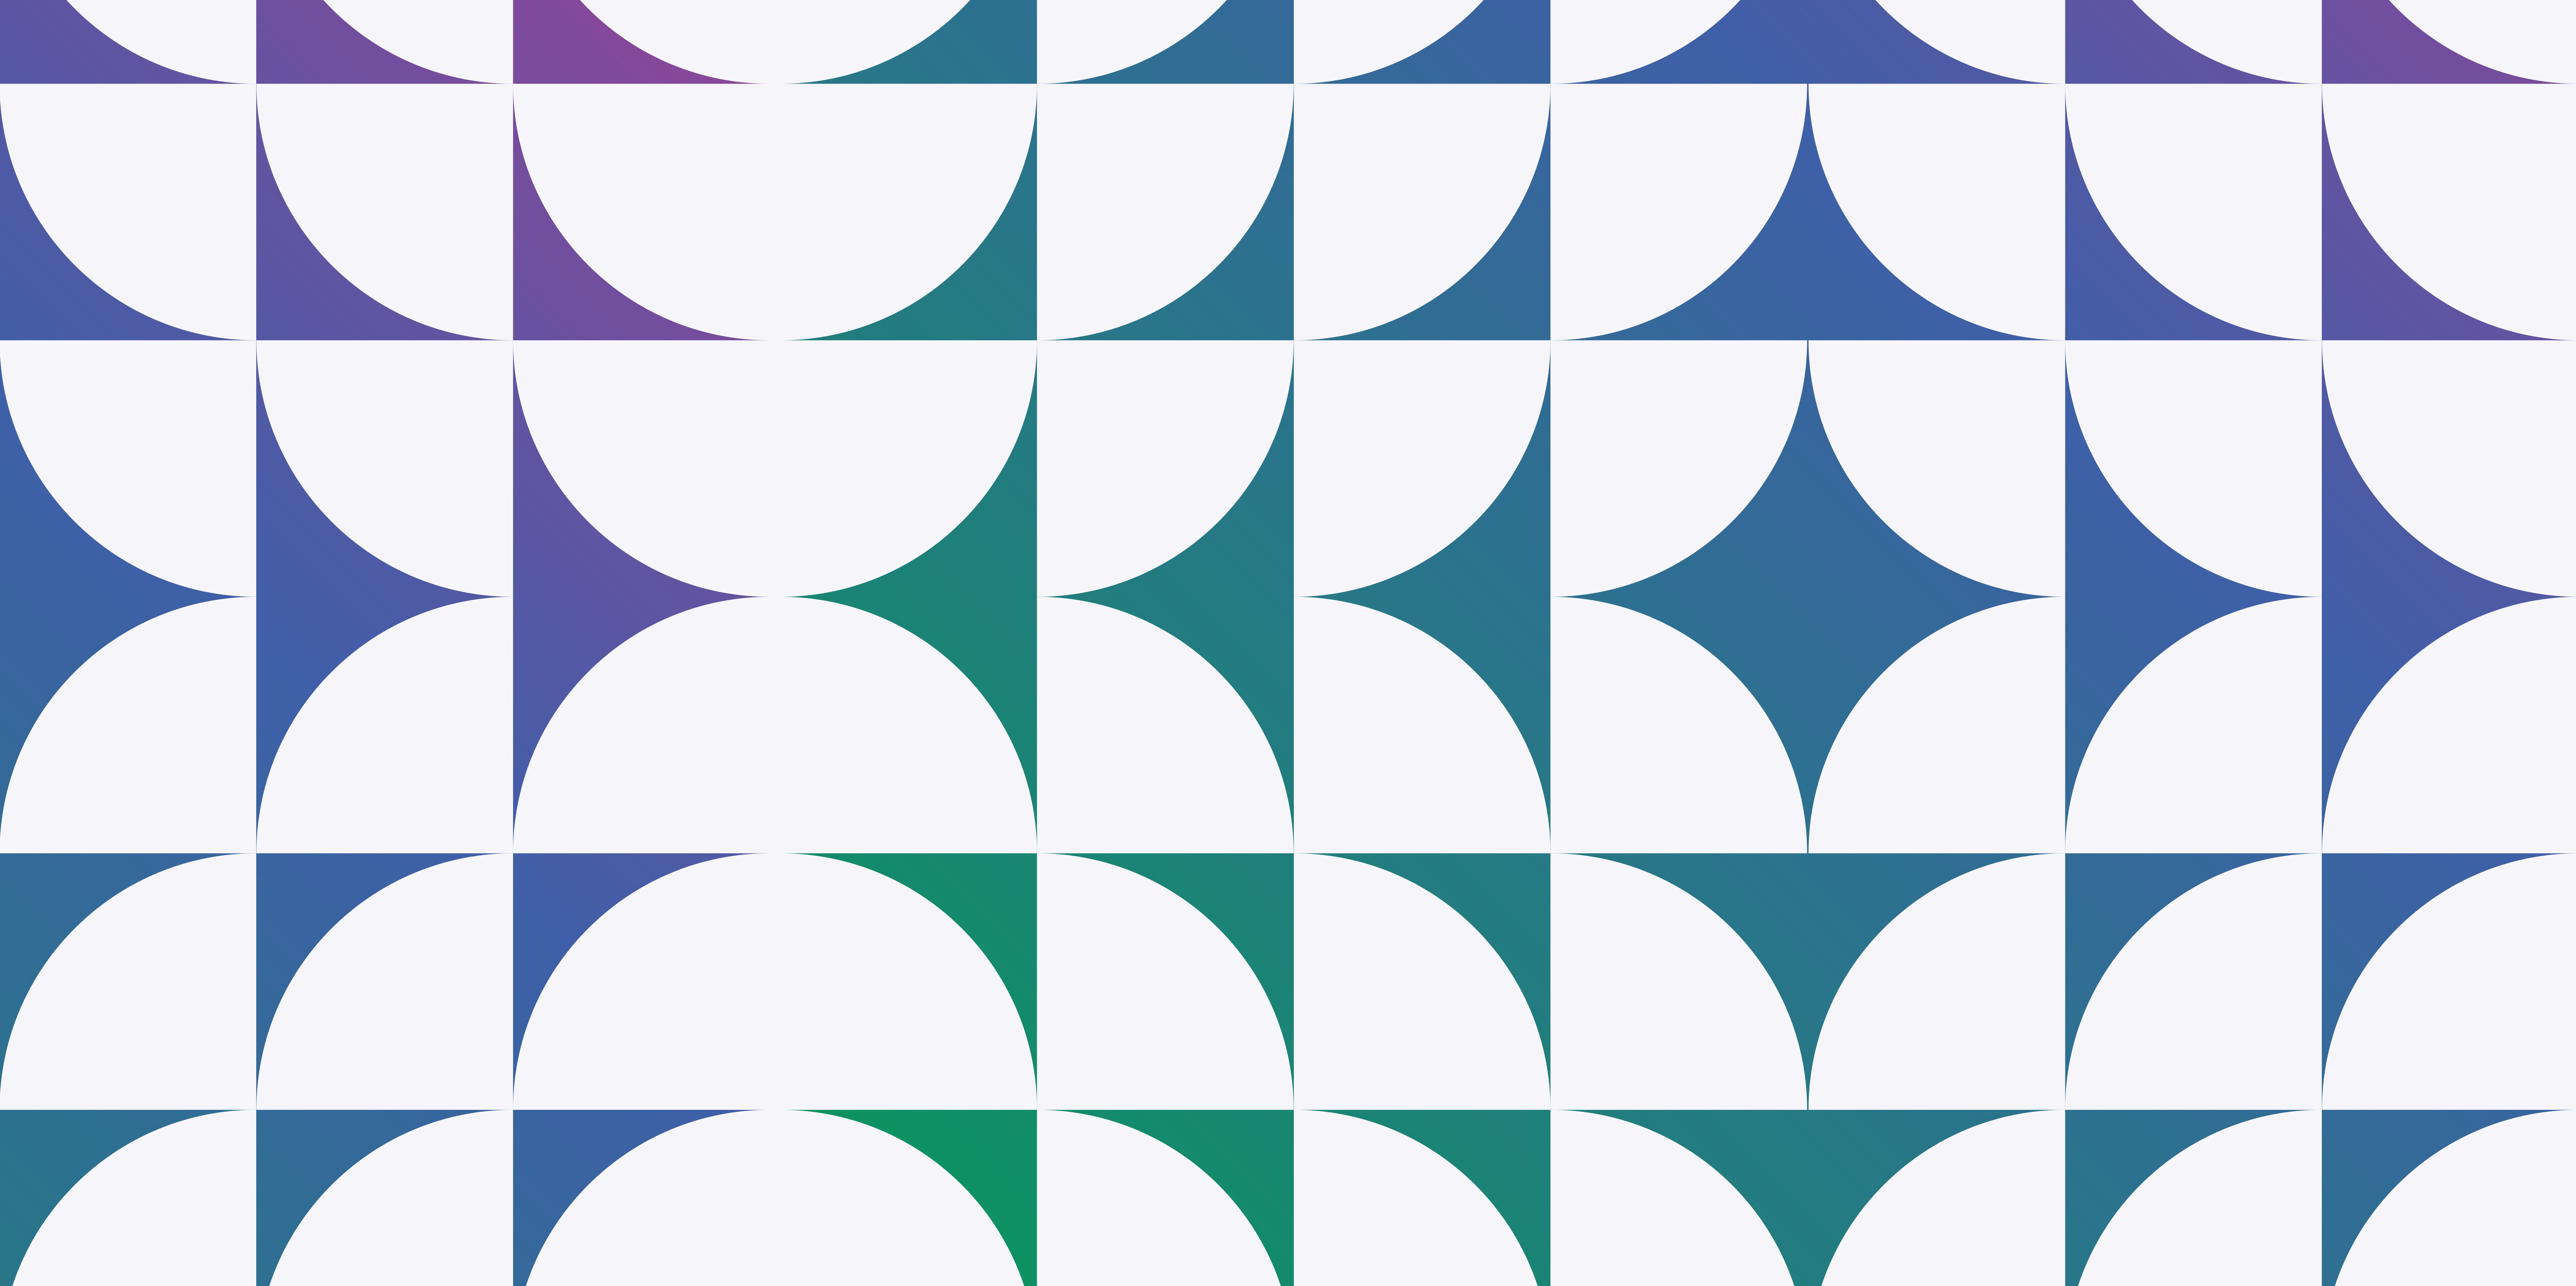 Abstract graphic with gradient green, blue, and purple colors and a significant amount of white space.